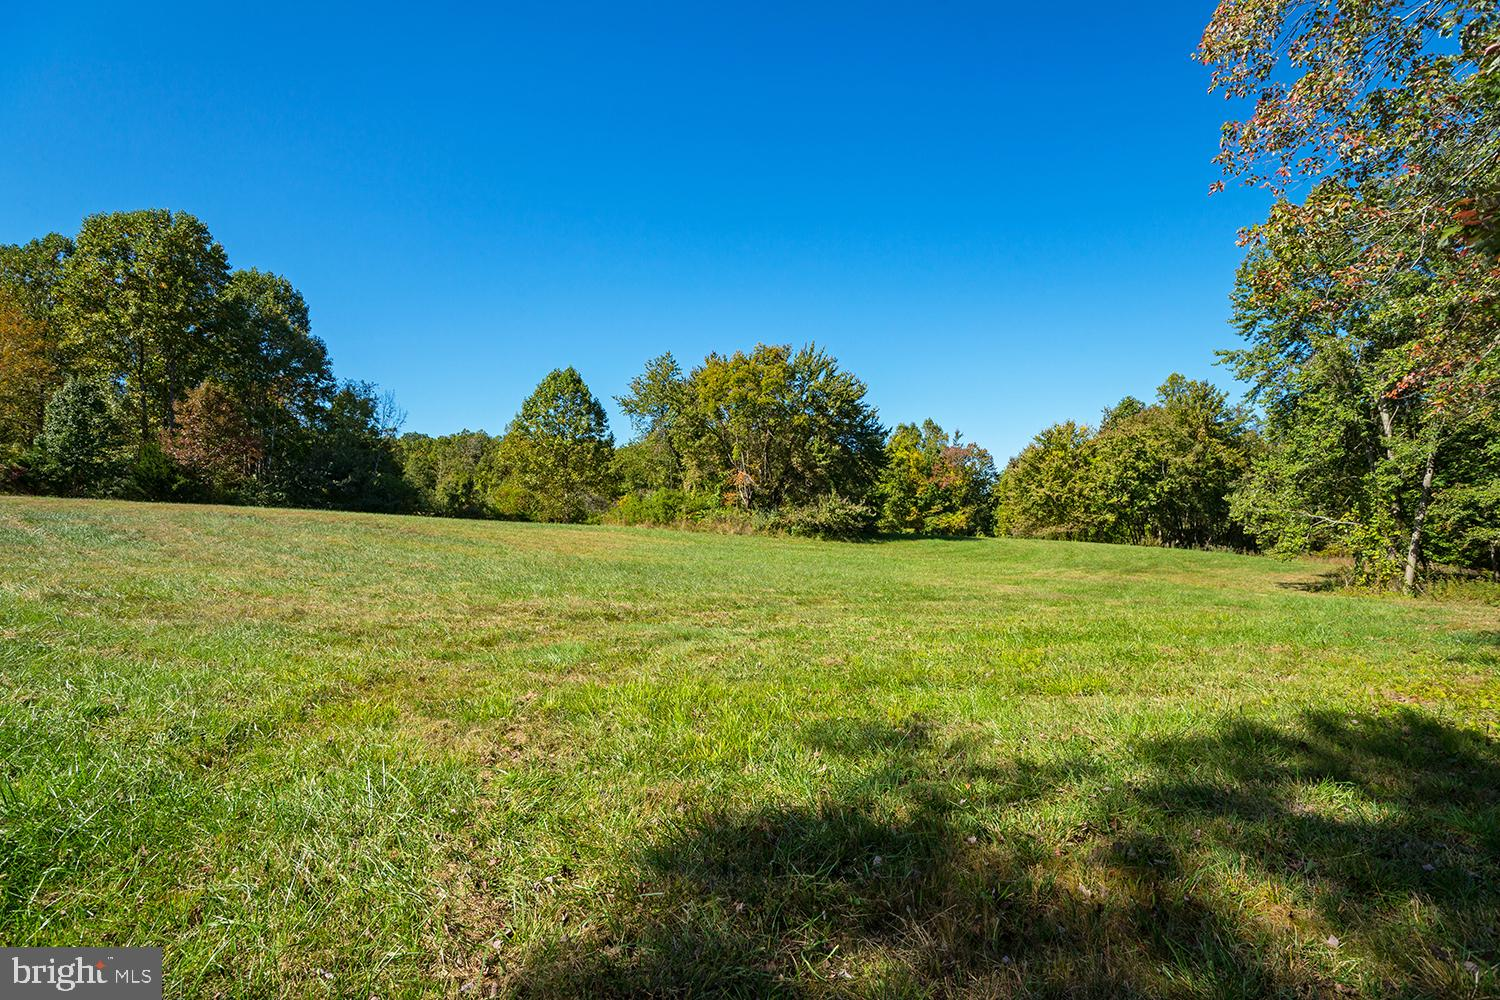 HOLLY HILL FARM LANE 2, REVA, VA 22735